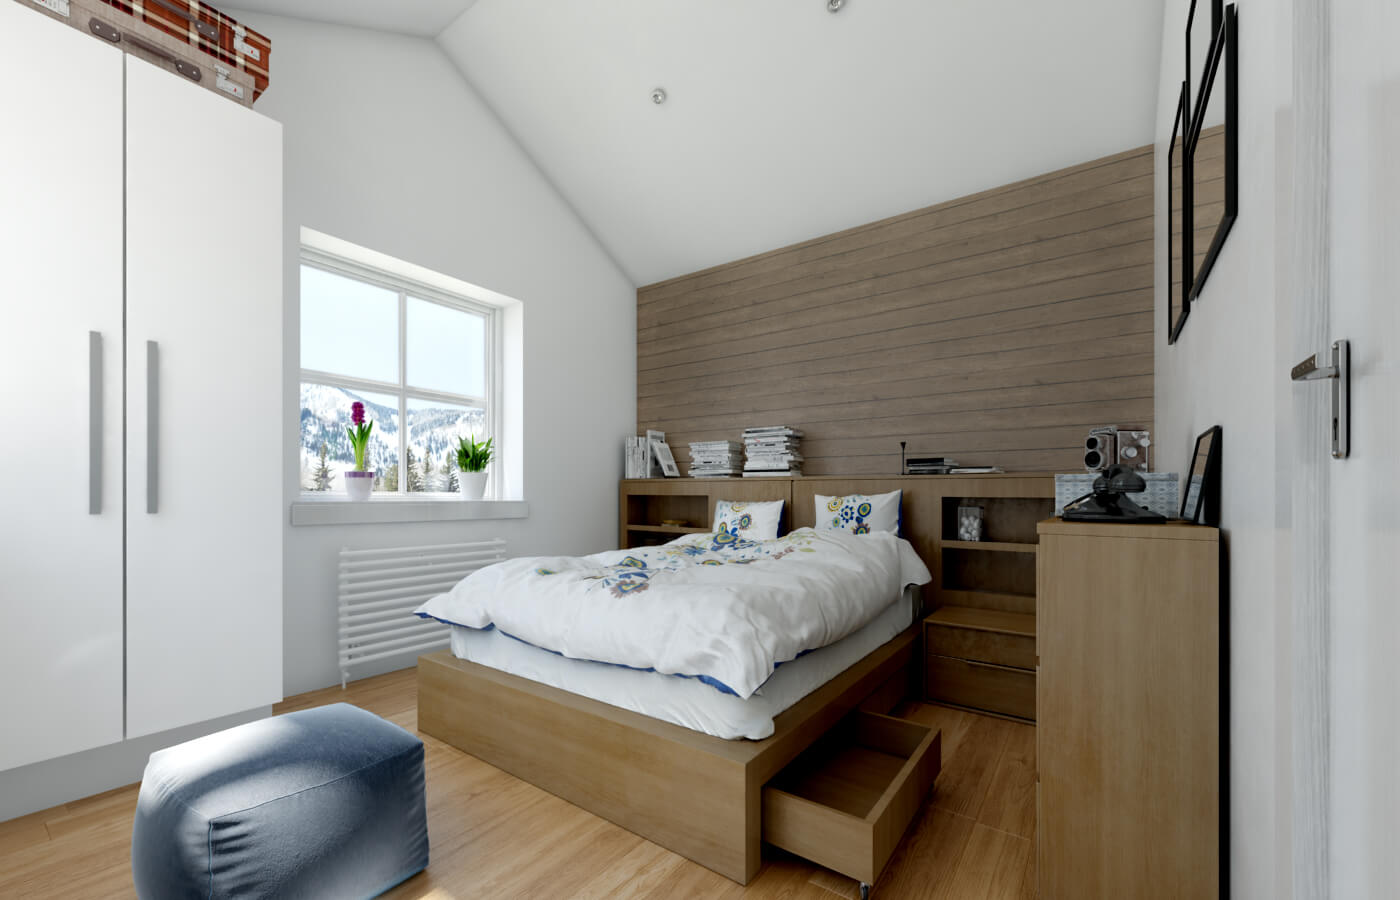 Masterbedroom som ger lugn.